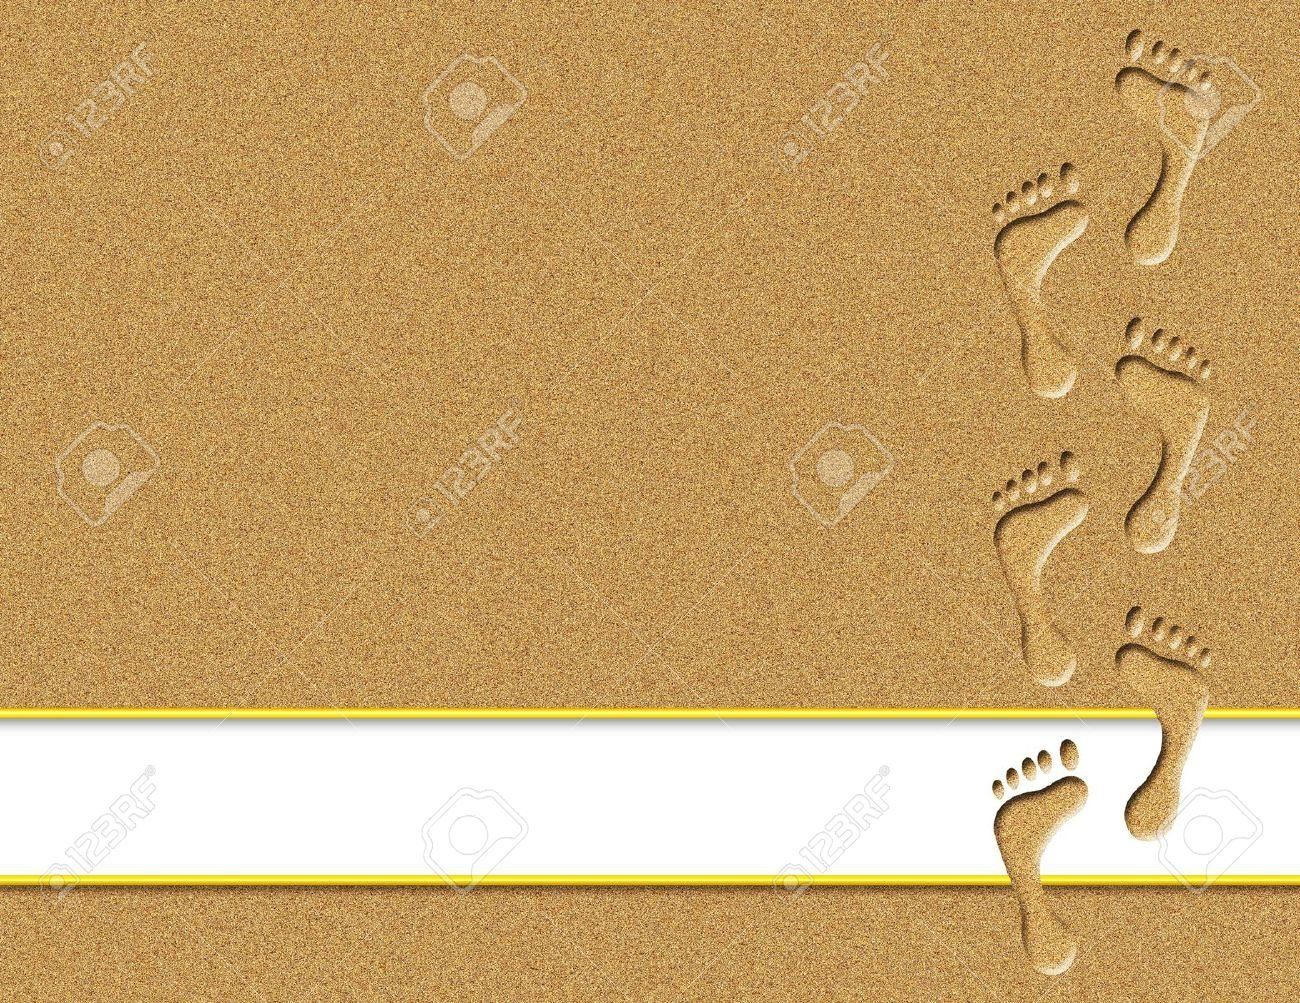 Footprints In Sand With White Banner For Text Stock Photo, Picture Intended For Footprints In The Sand Wall Art (View 17 of 20)